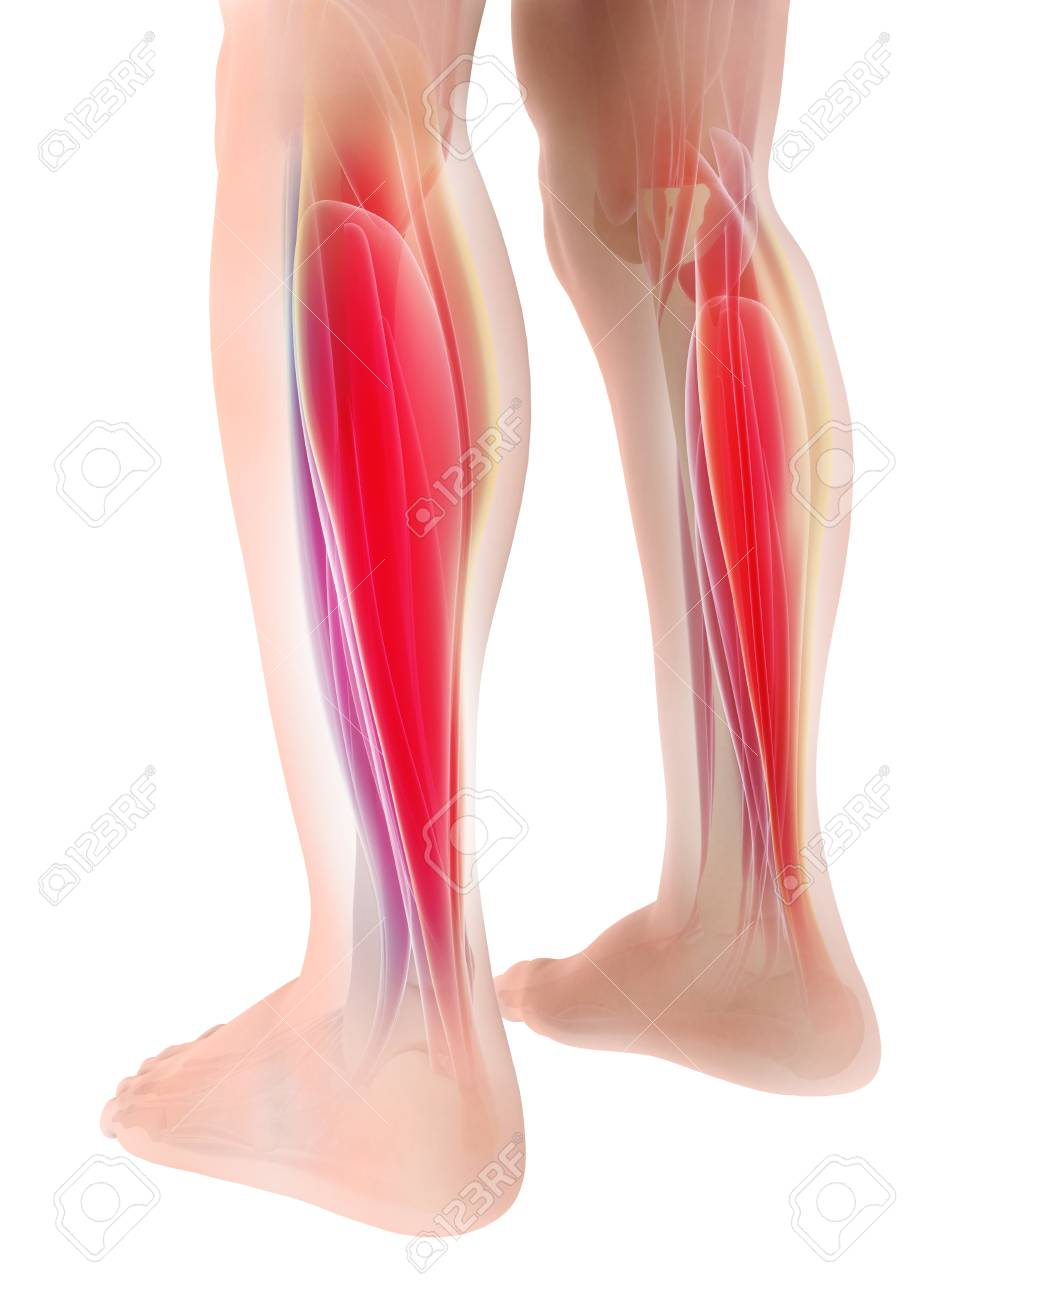 3d Illustration Of Gastrocnemius Part Of Legs Muscle Anatomy